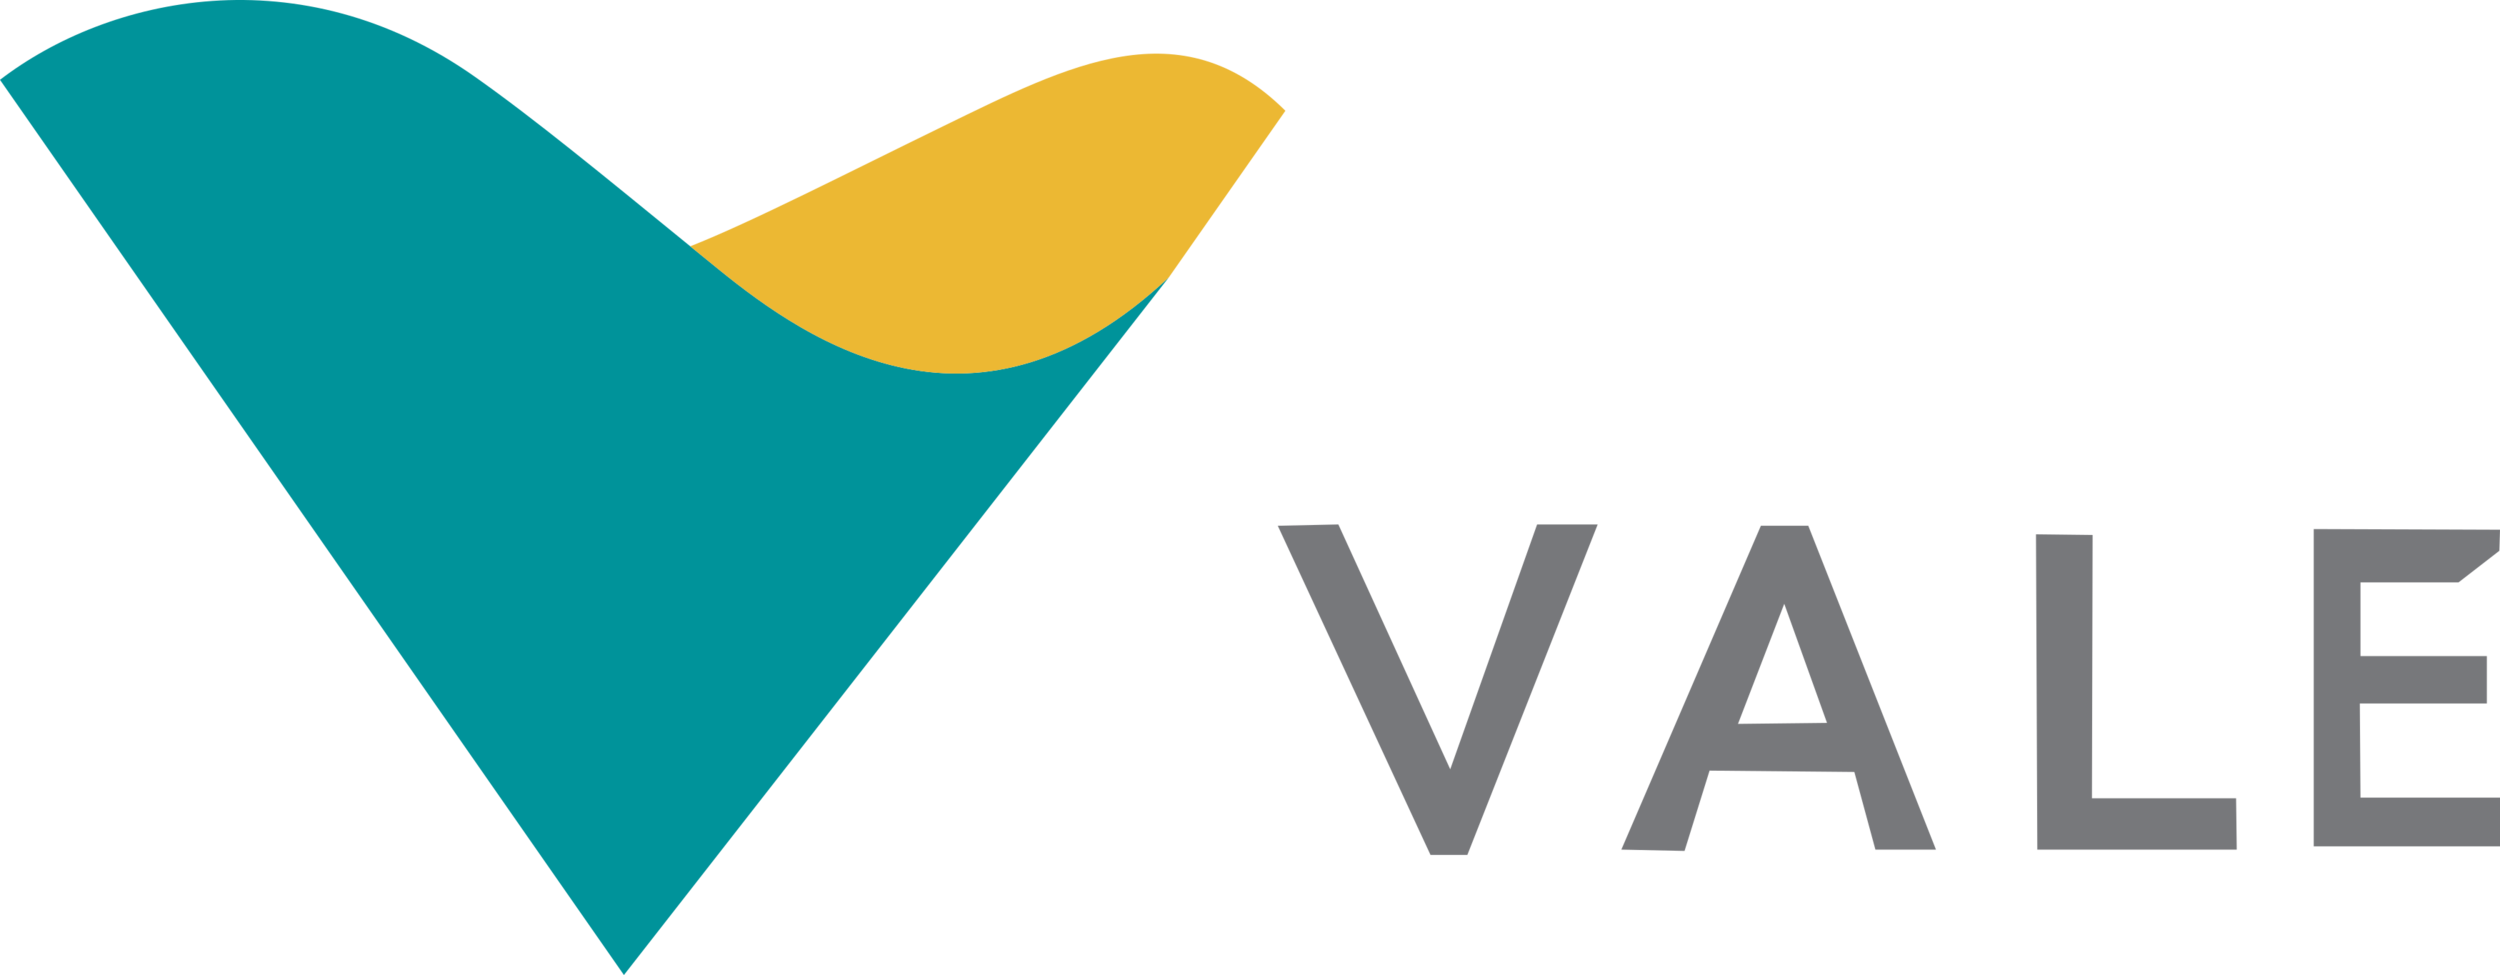 vale-logo-1.png